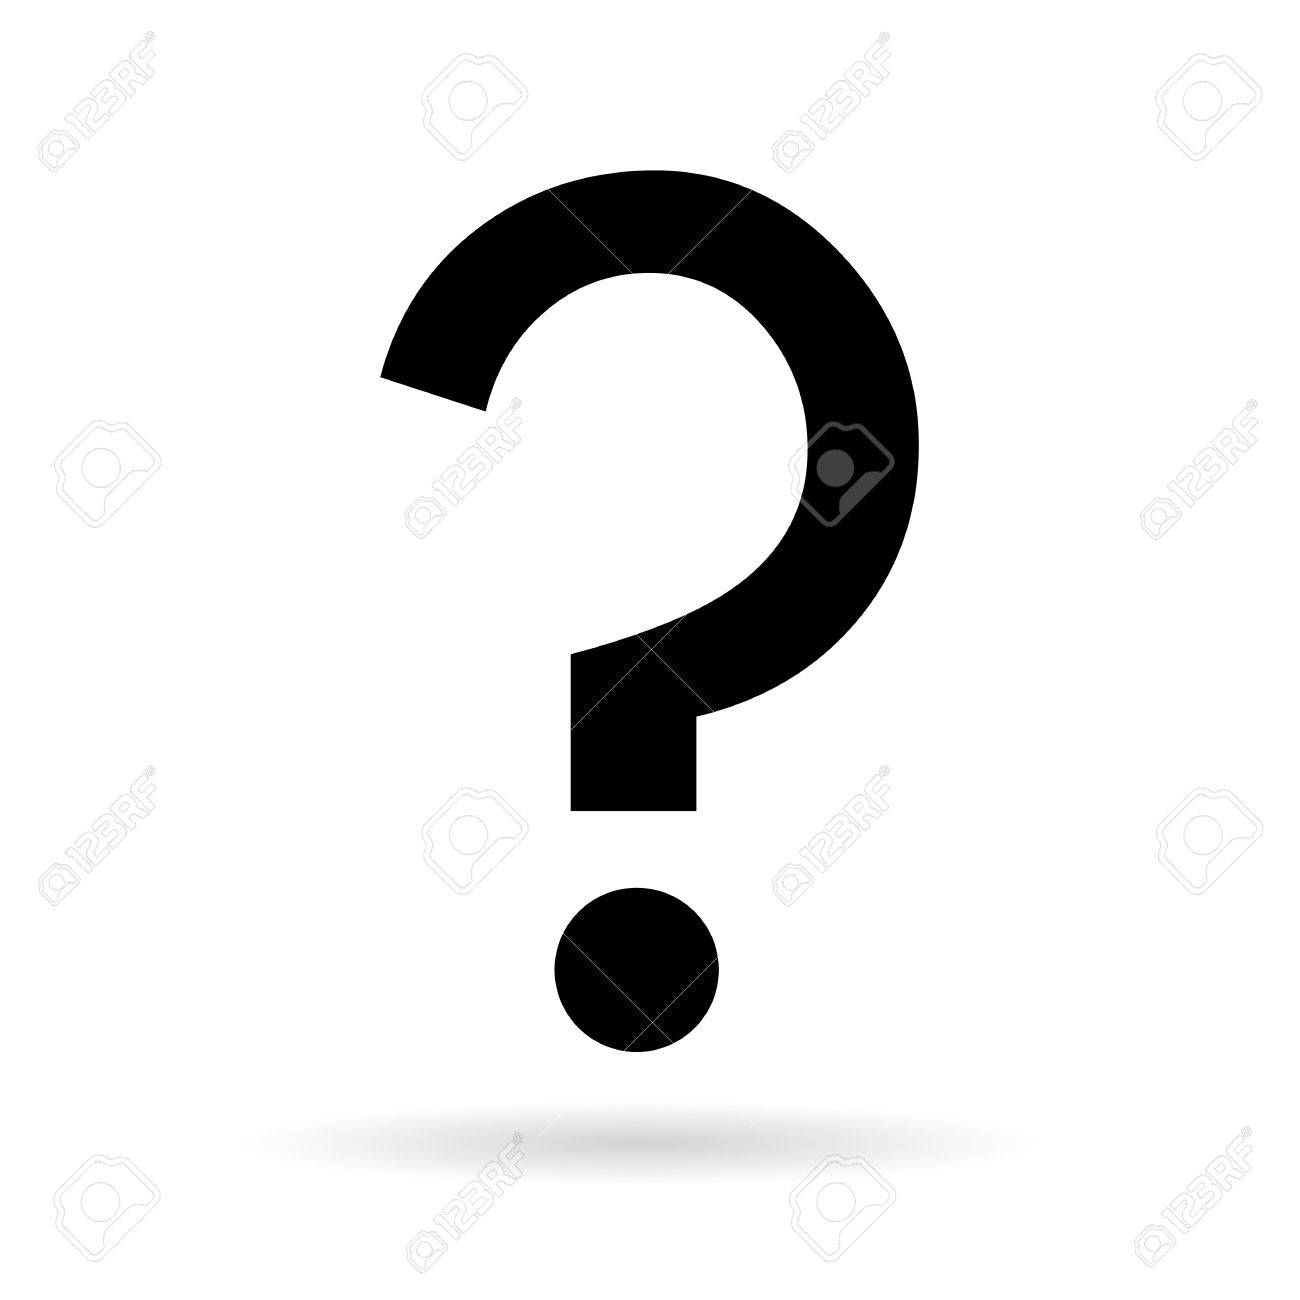 question mark vector icon royalty free cliparts vectors and stock rh 123rf com question mark vector black question mark vector png